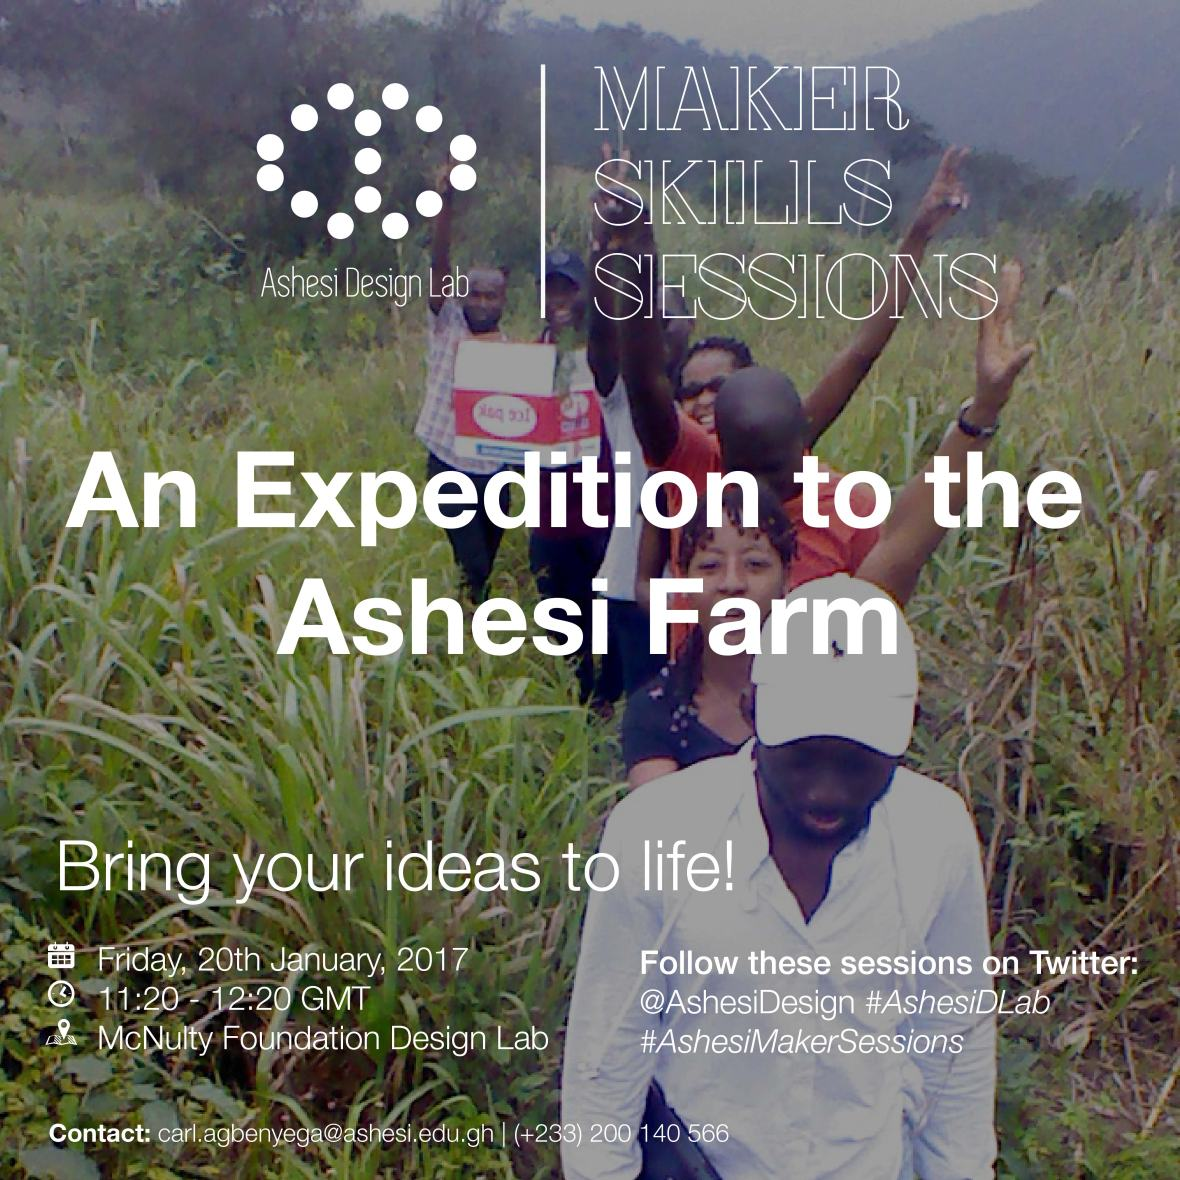 ashesi-dlab-maker-skills-sessions-expedition-to-the-ashesi-farm-01-01